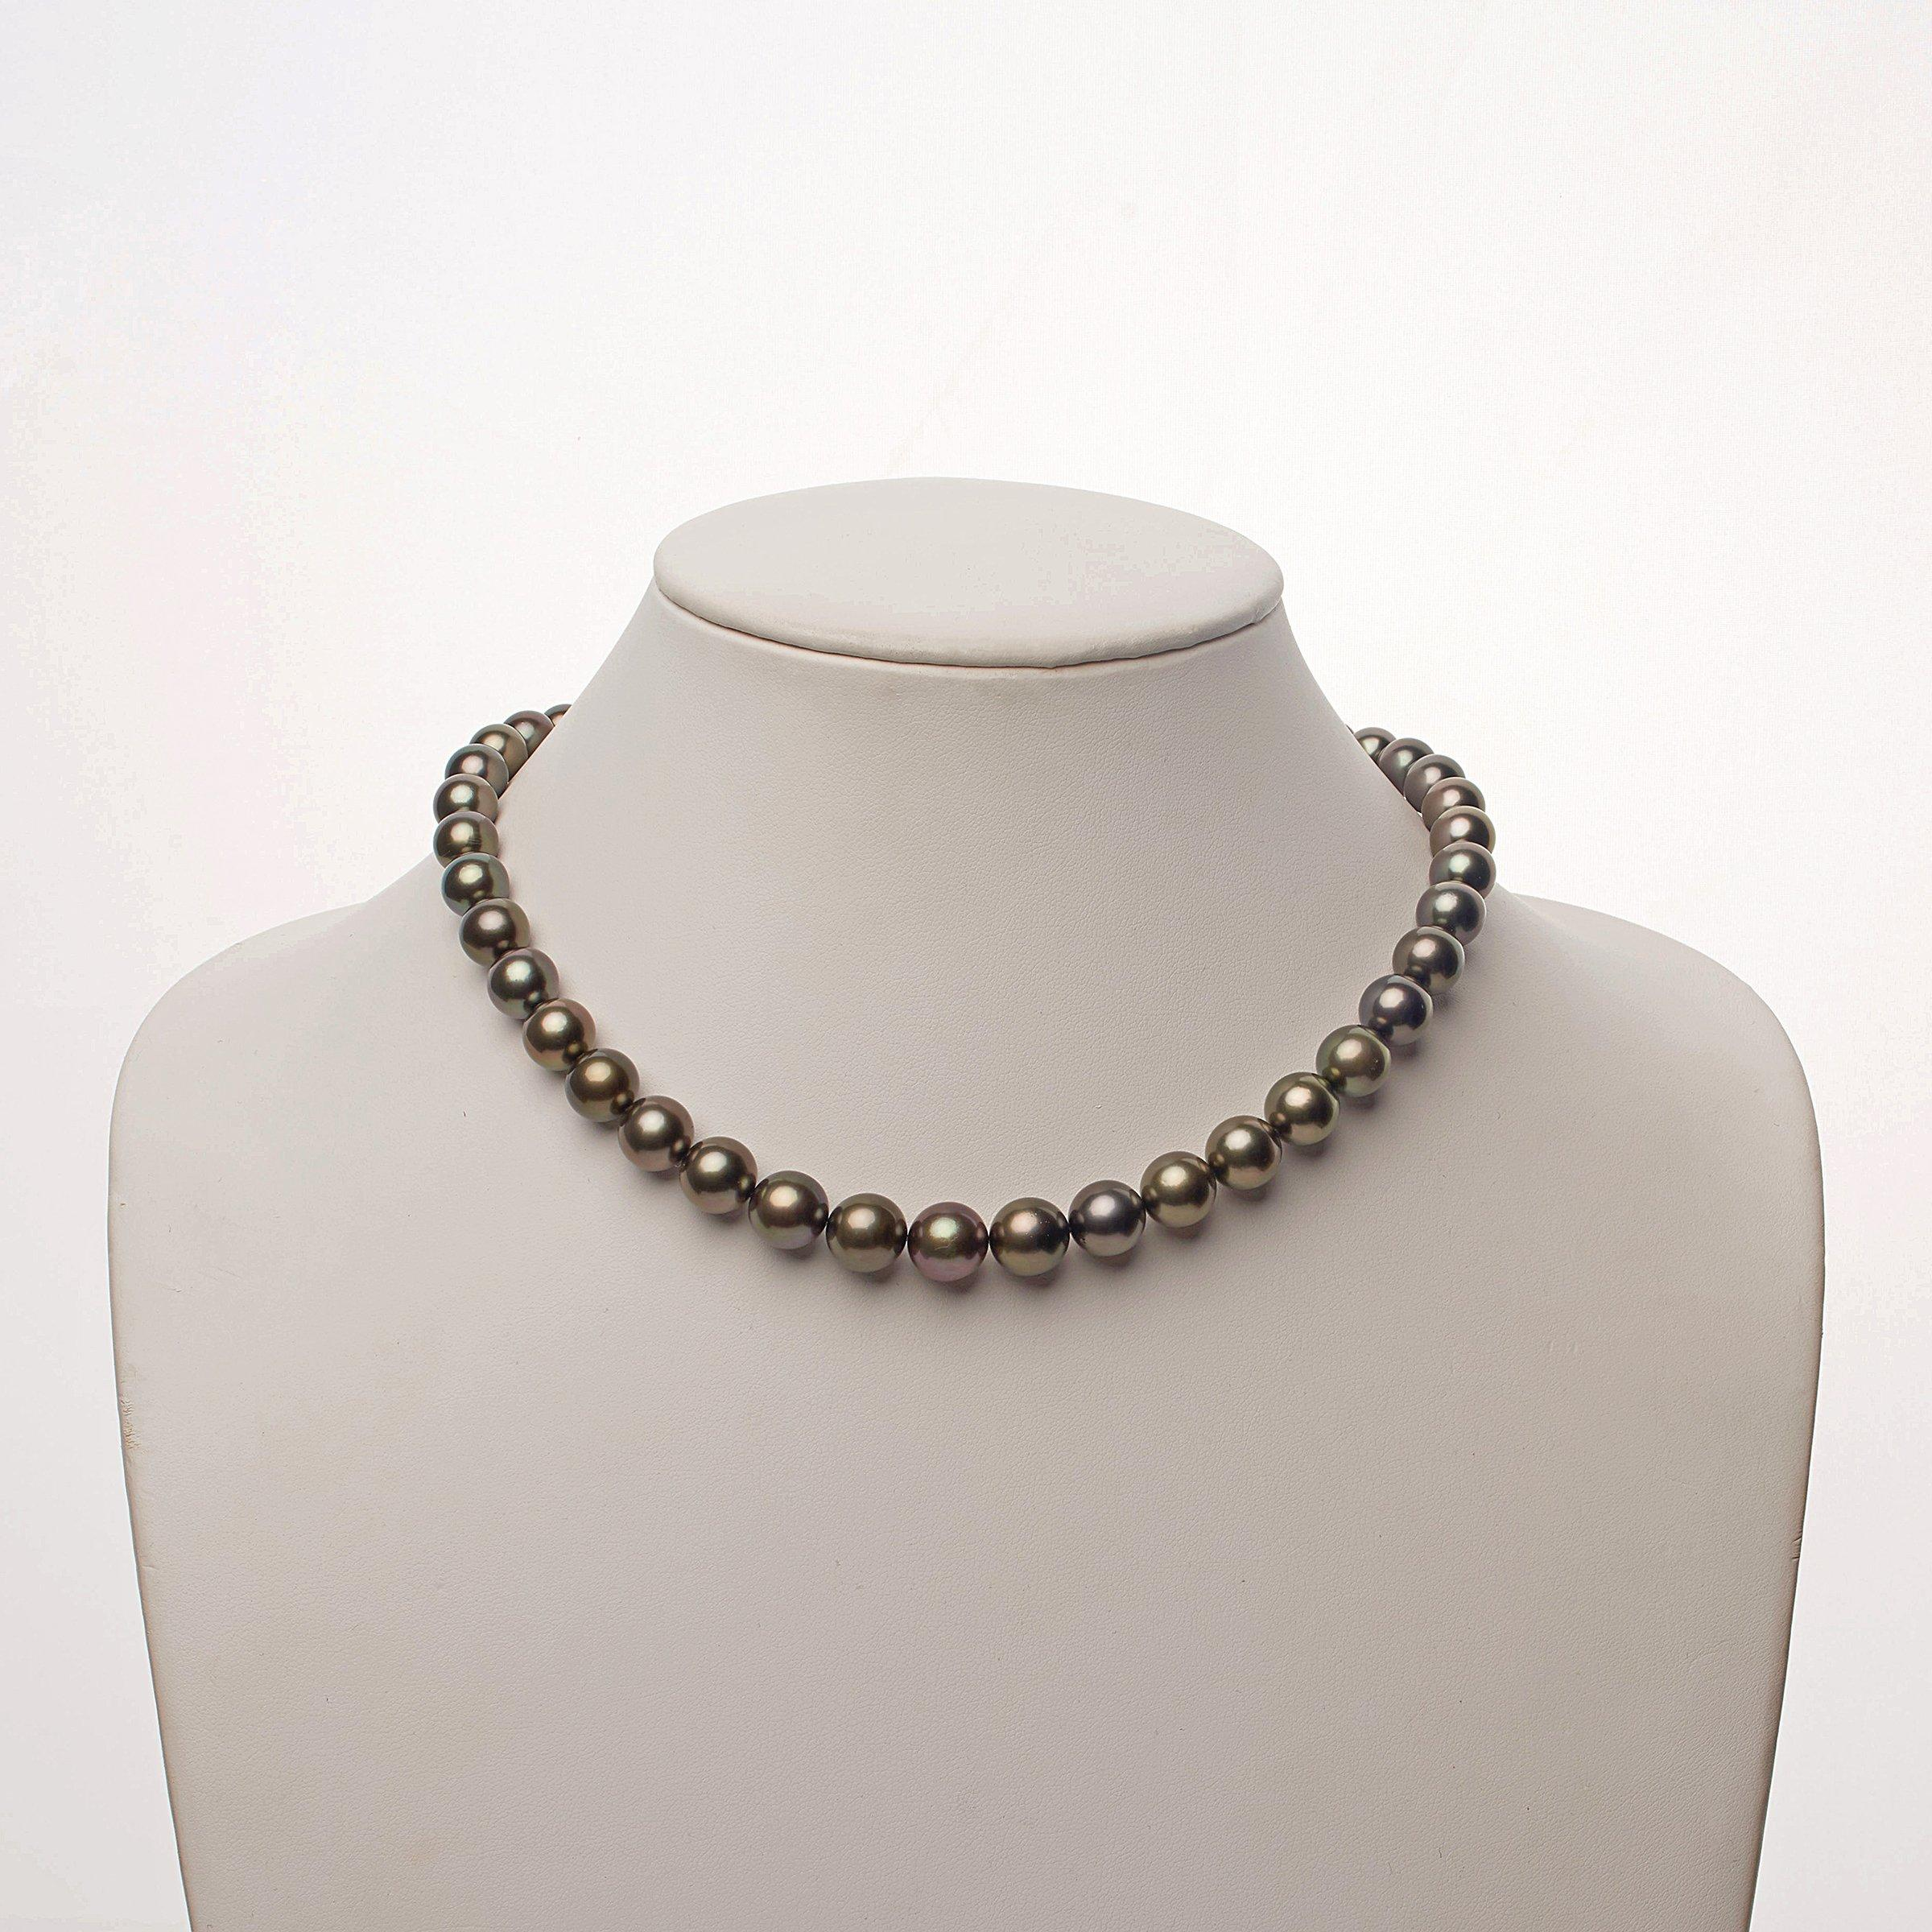 8.2-10.9 mm AA+/AAA Tahitian Round Pearl Necklace